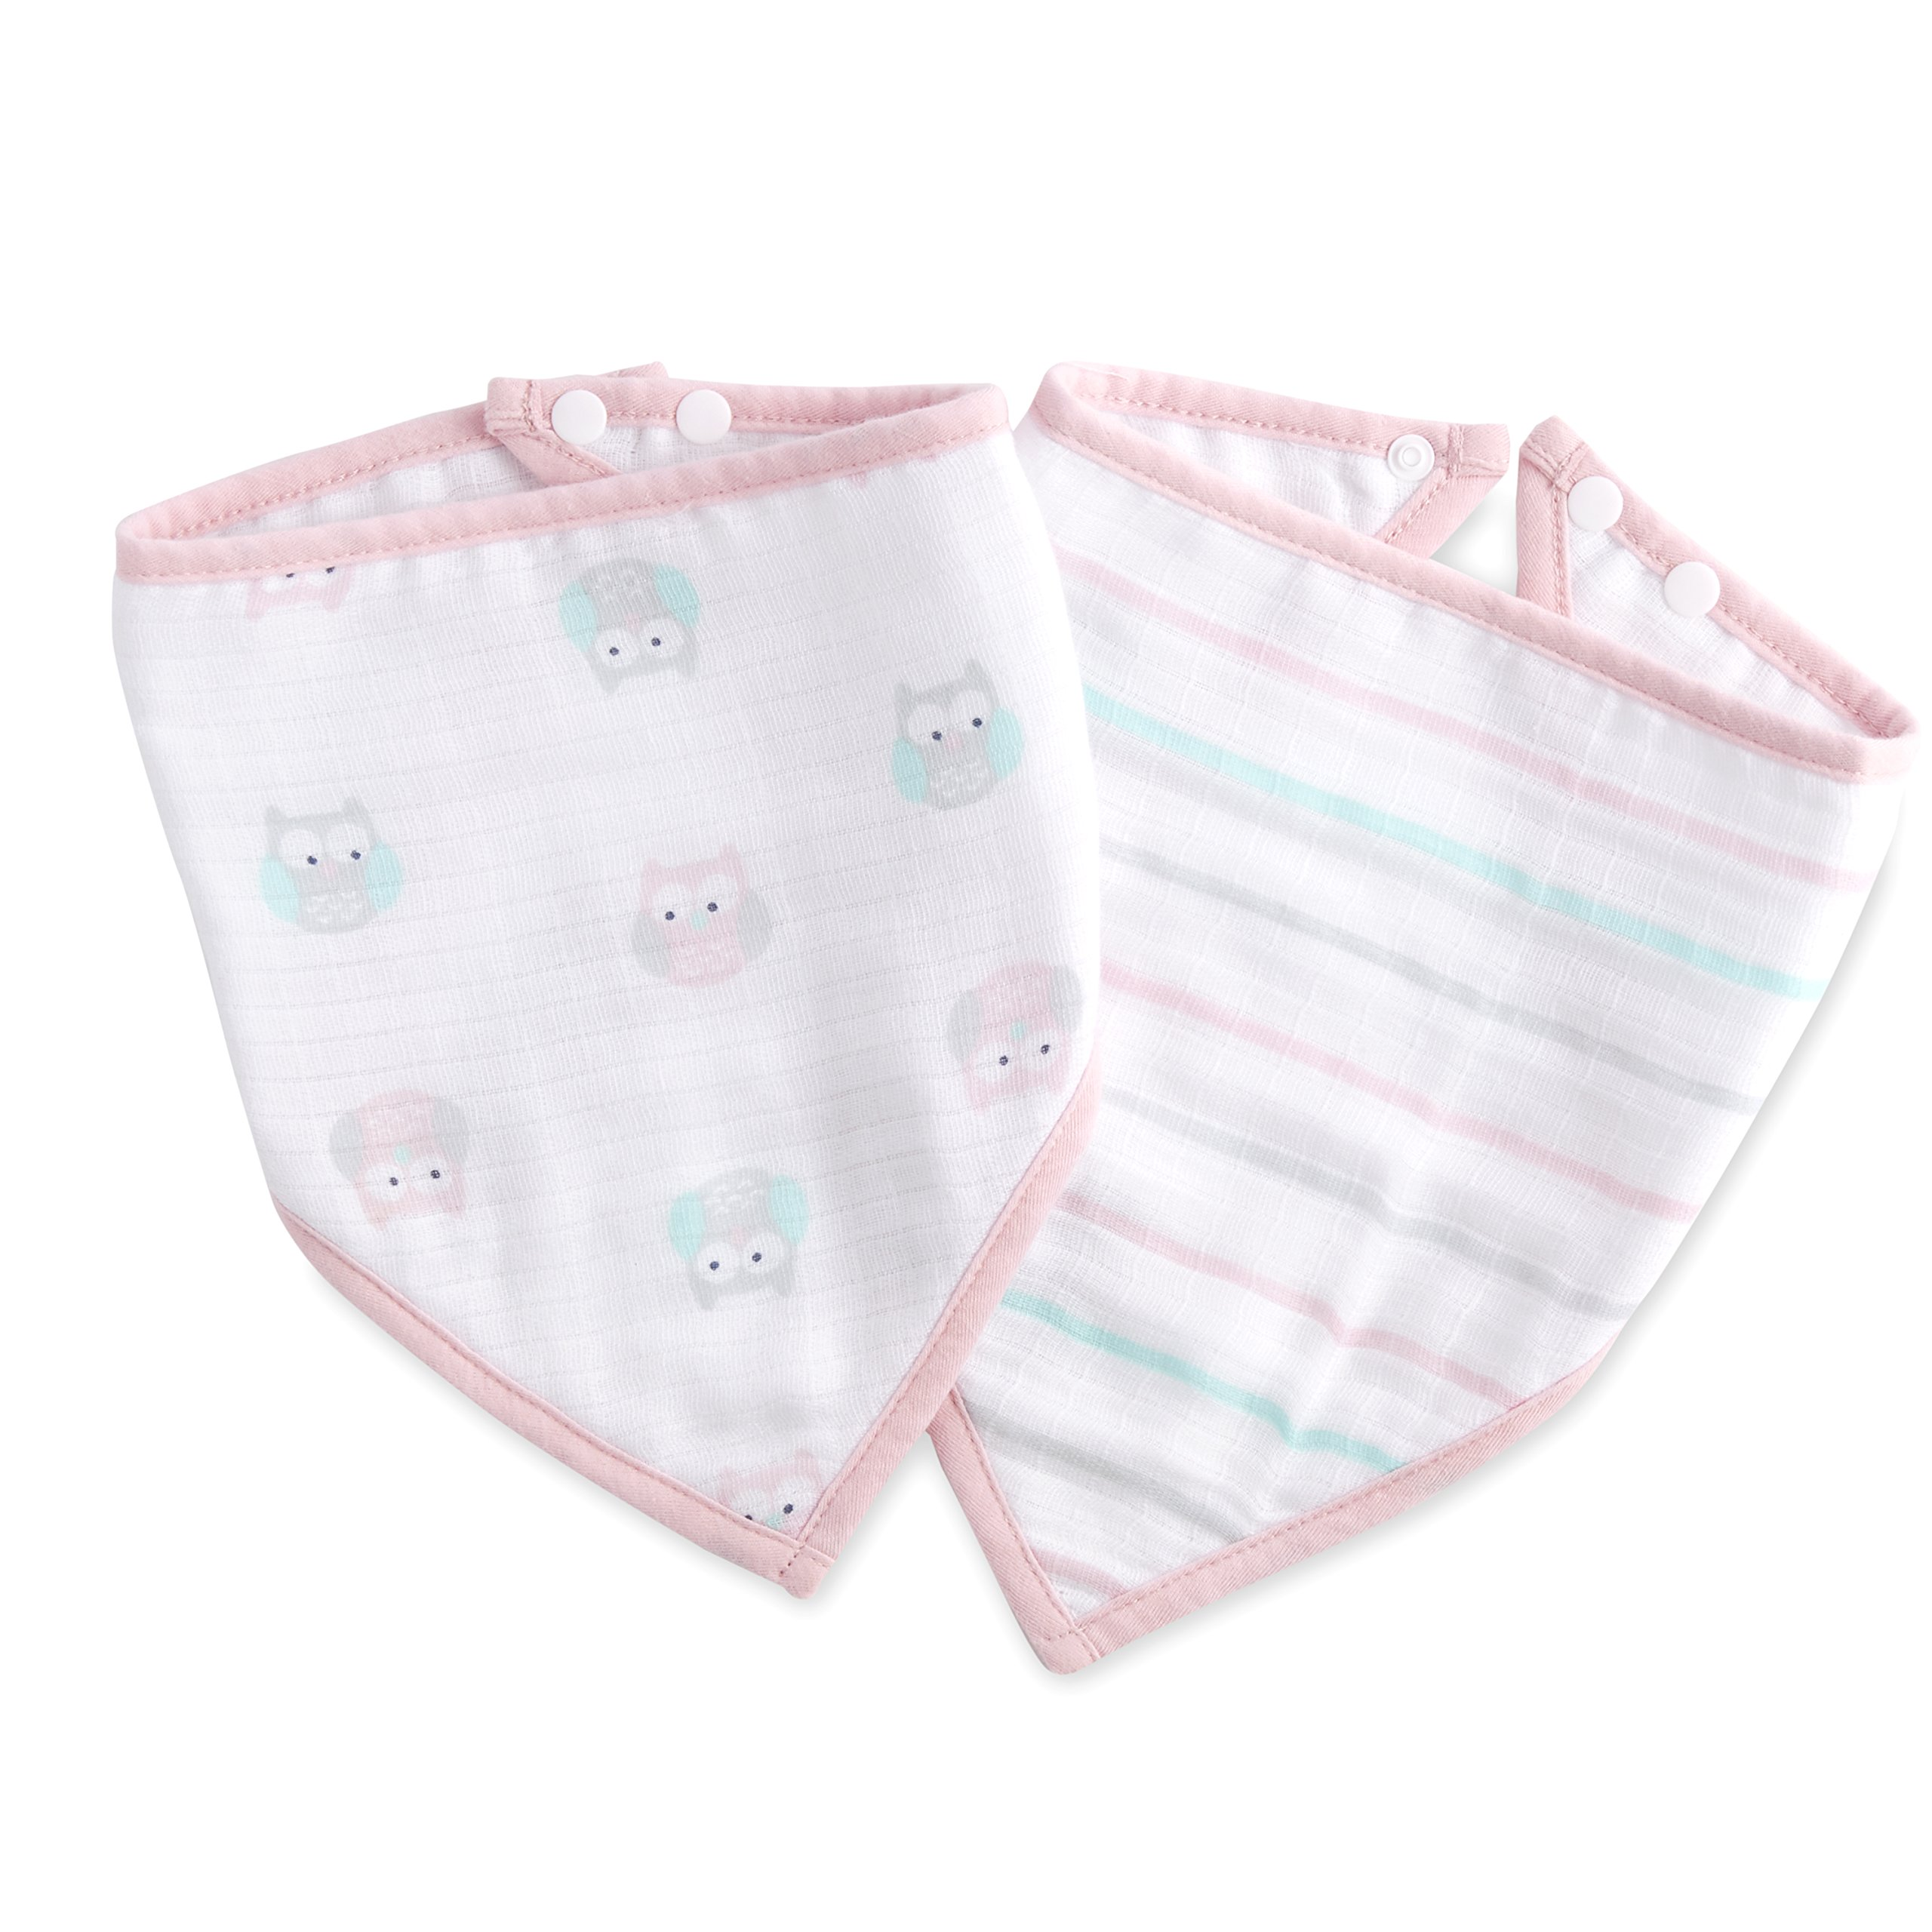 ideal baby by the makers of aden + anais bandana bib 2 pack, owls